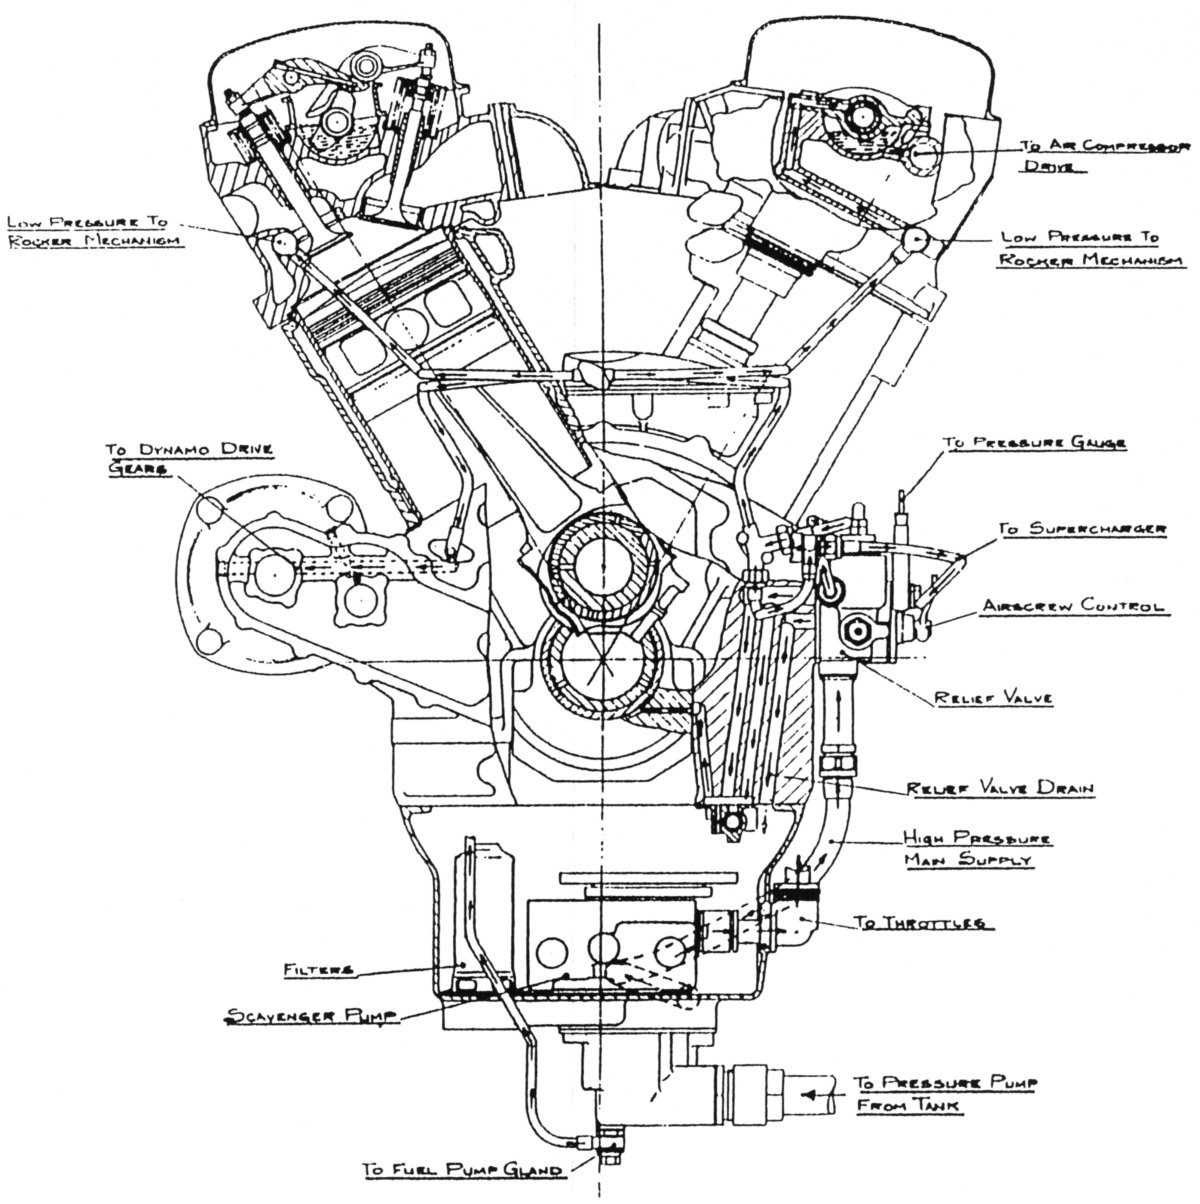 Ramp head merlin transverse section of the engine showing the lubrication system layout also provieds good detail of the valve gear and cylinder head malvernweather Choice Image